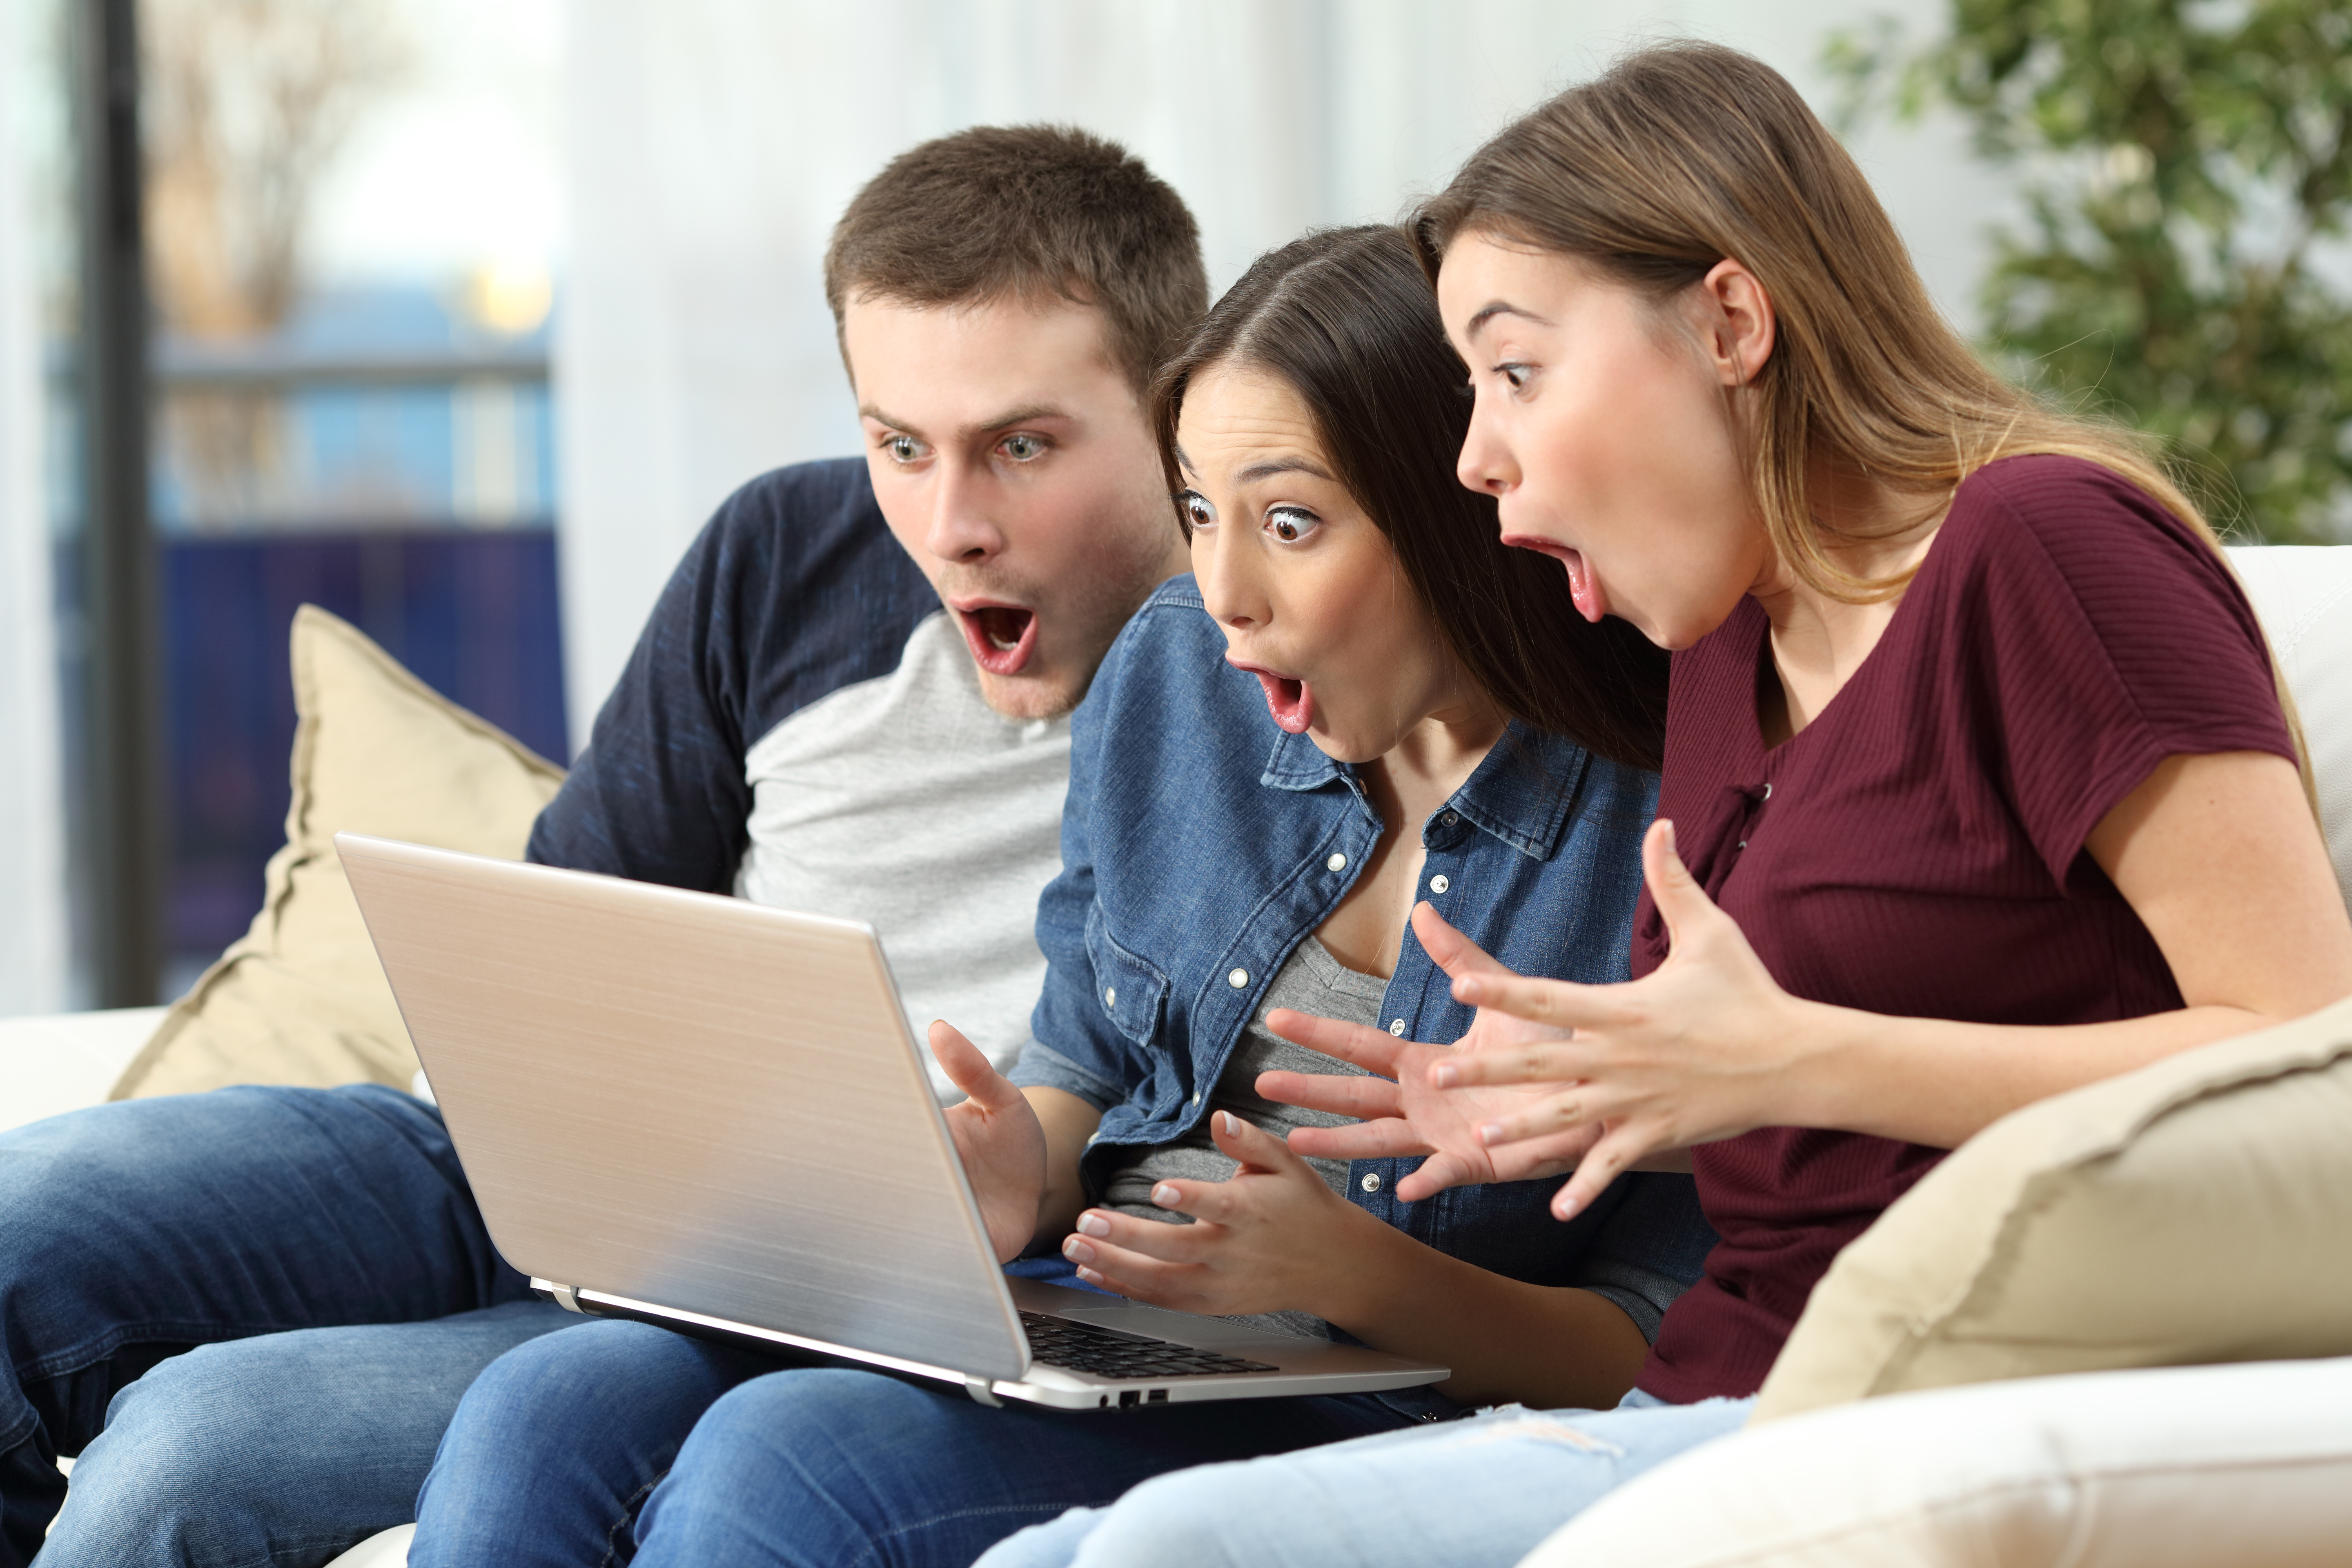 friends looking at at content on computer, amazed faces